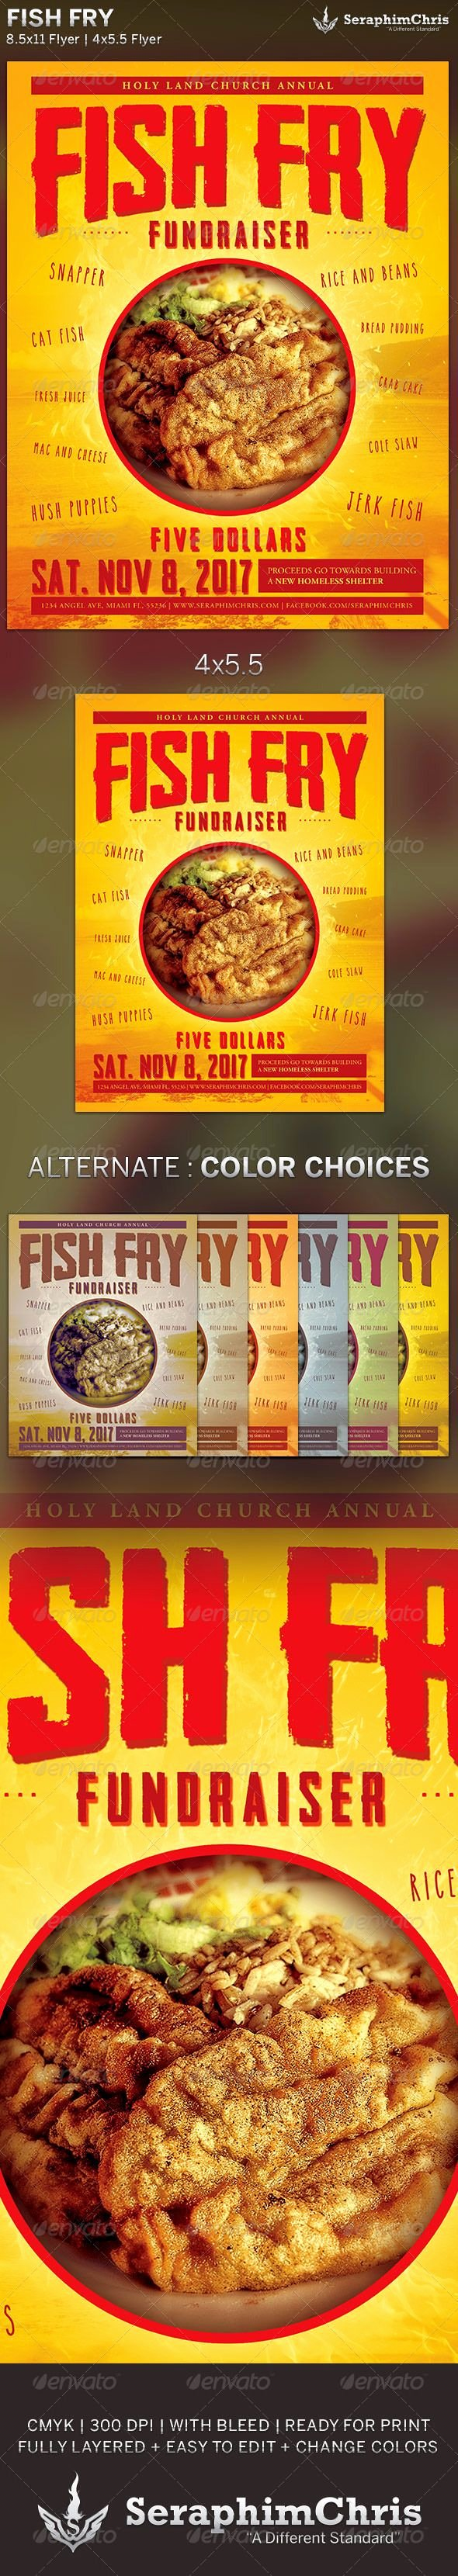 Fish Fry Flyer Template Awesome Fish Fry event Flyer Template is Designed for events Parties that Need A Modern Presentation